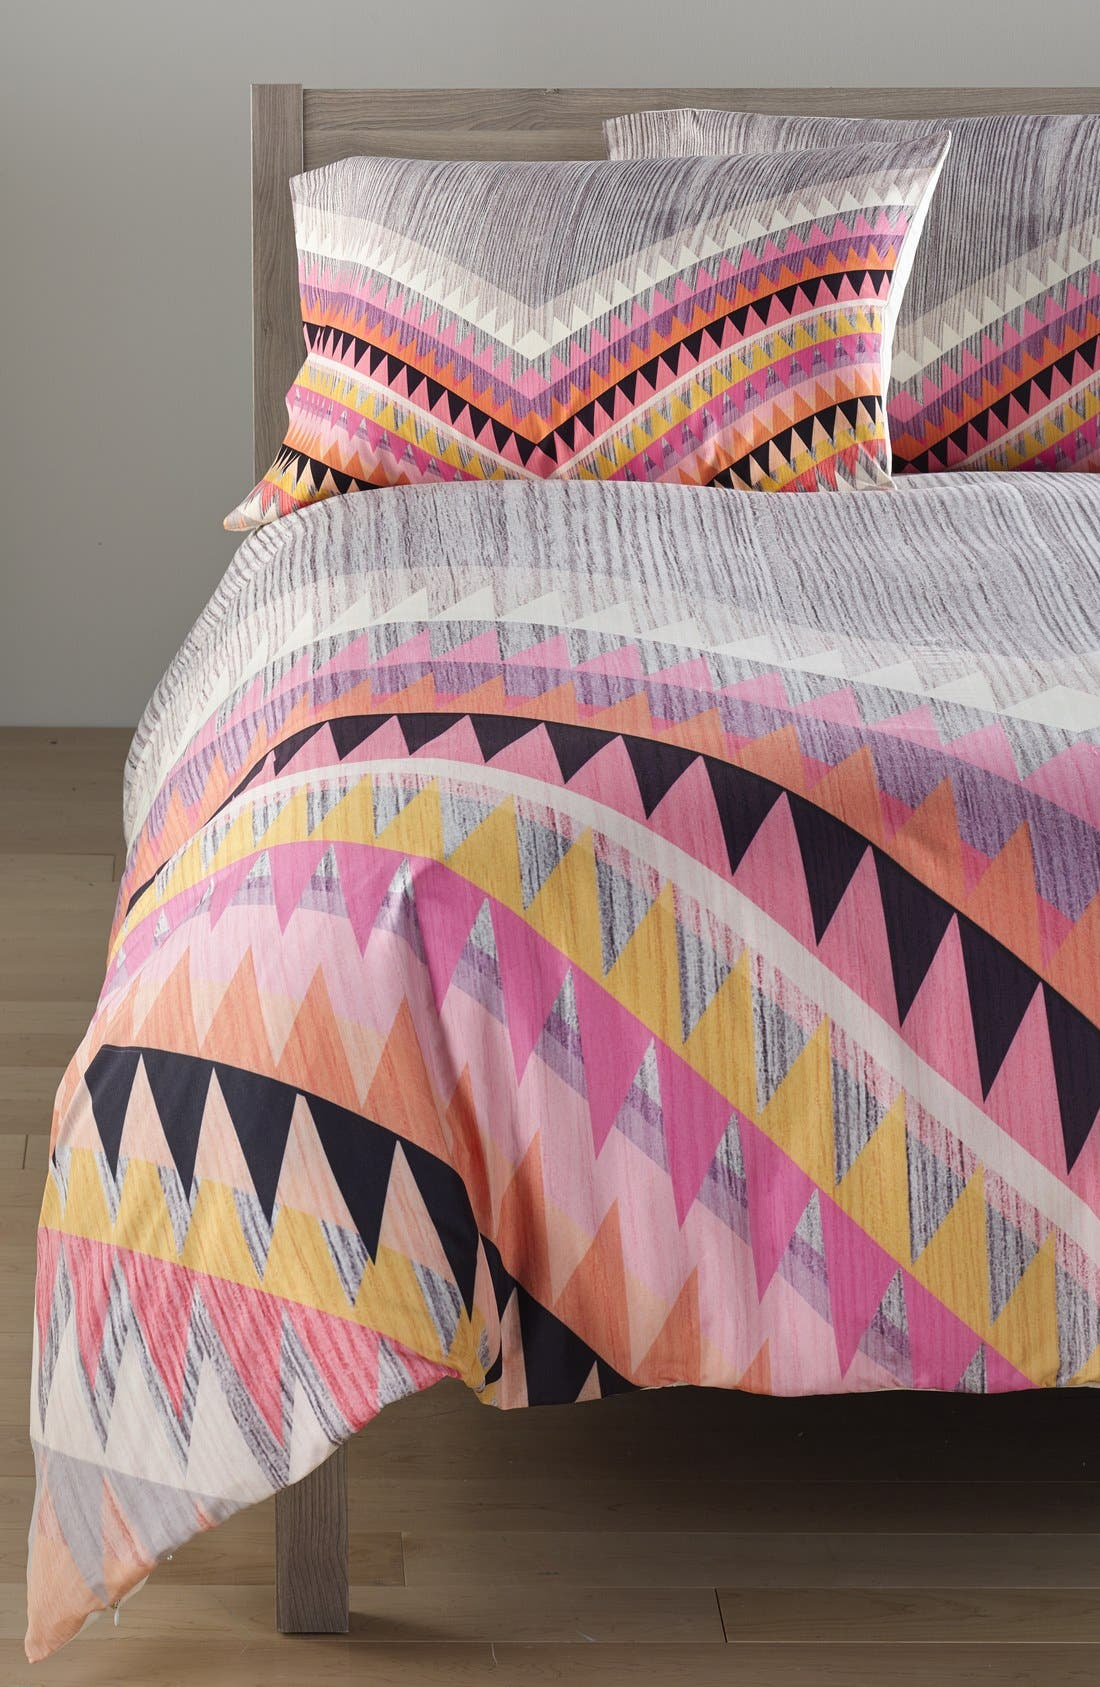 DENY DESIGNS Iveta Abolina Boardwalk Duvet Cover &